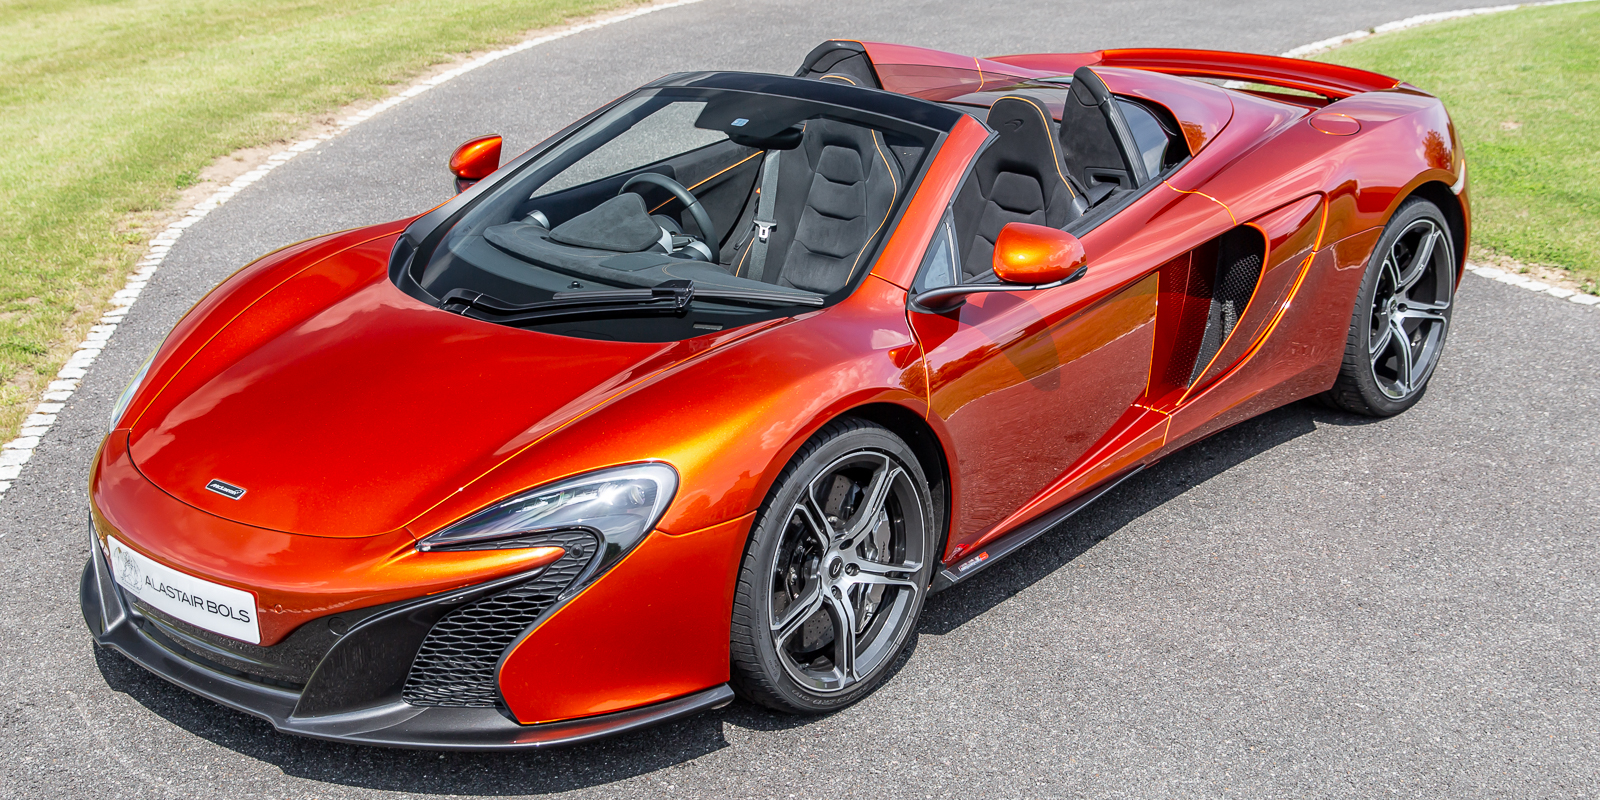 McLaren 650S Spider – LOOKING FOR OTHERS